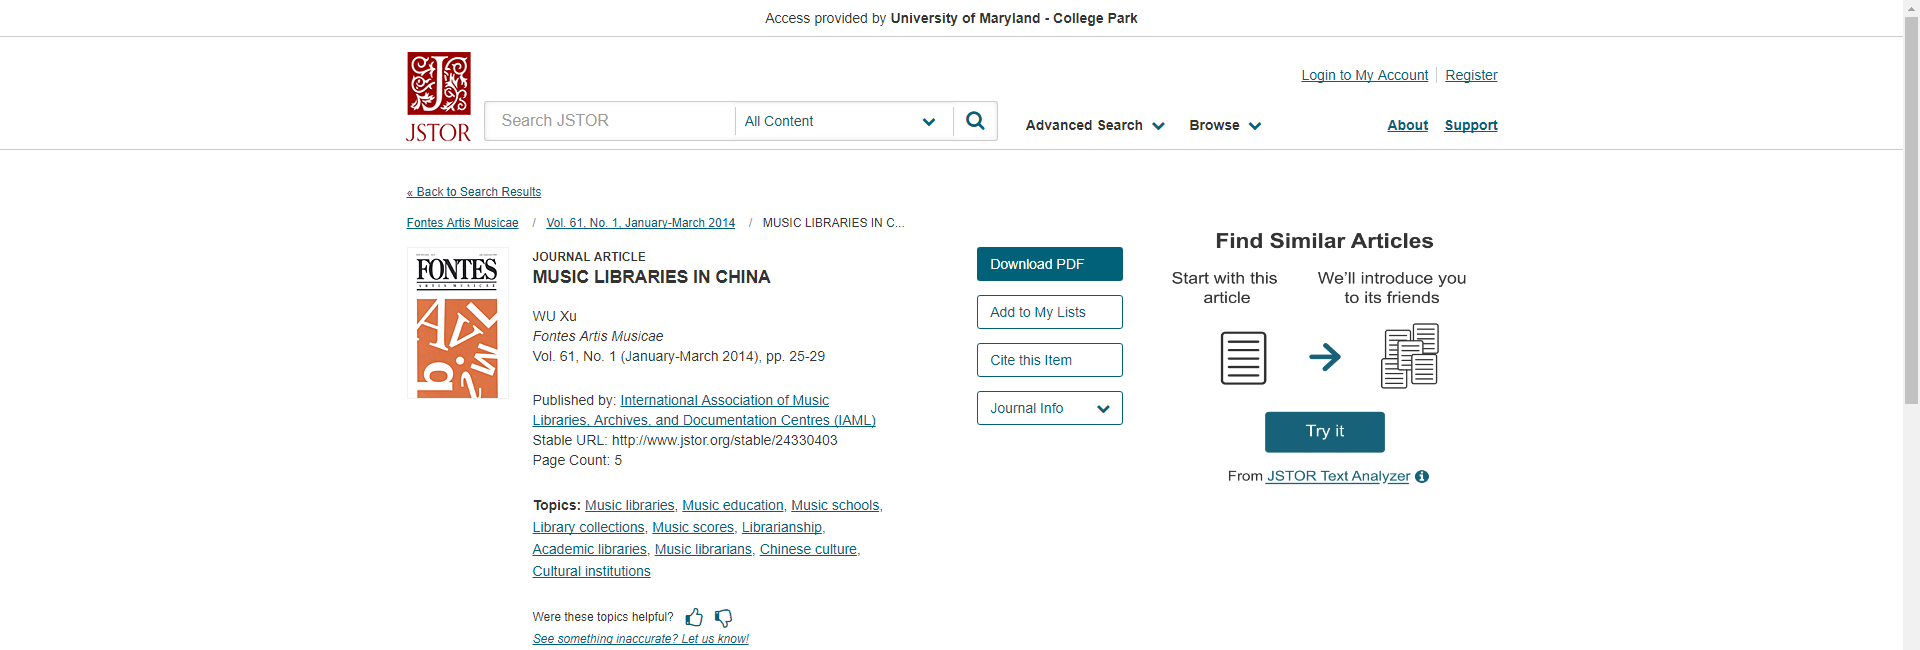 Finding a permalink on JSTOR.